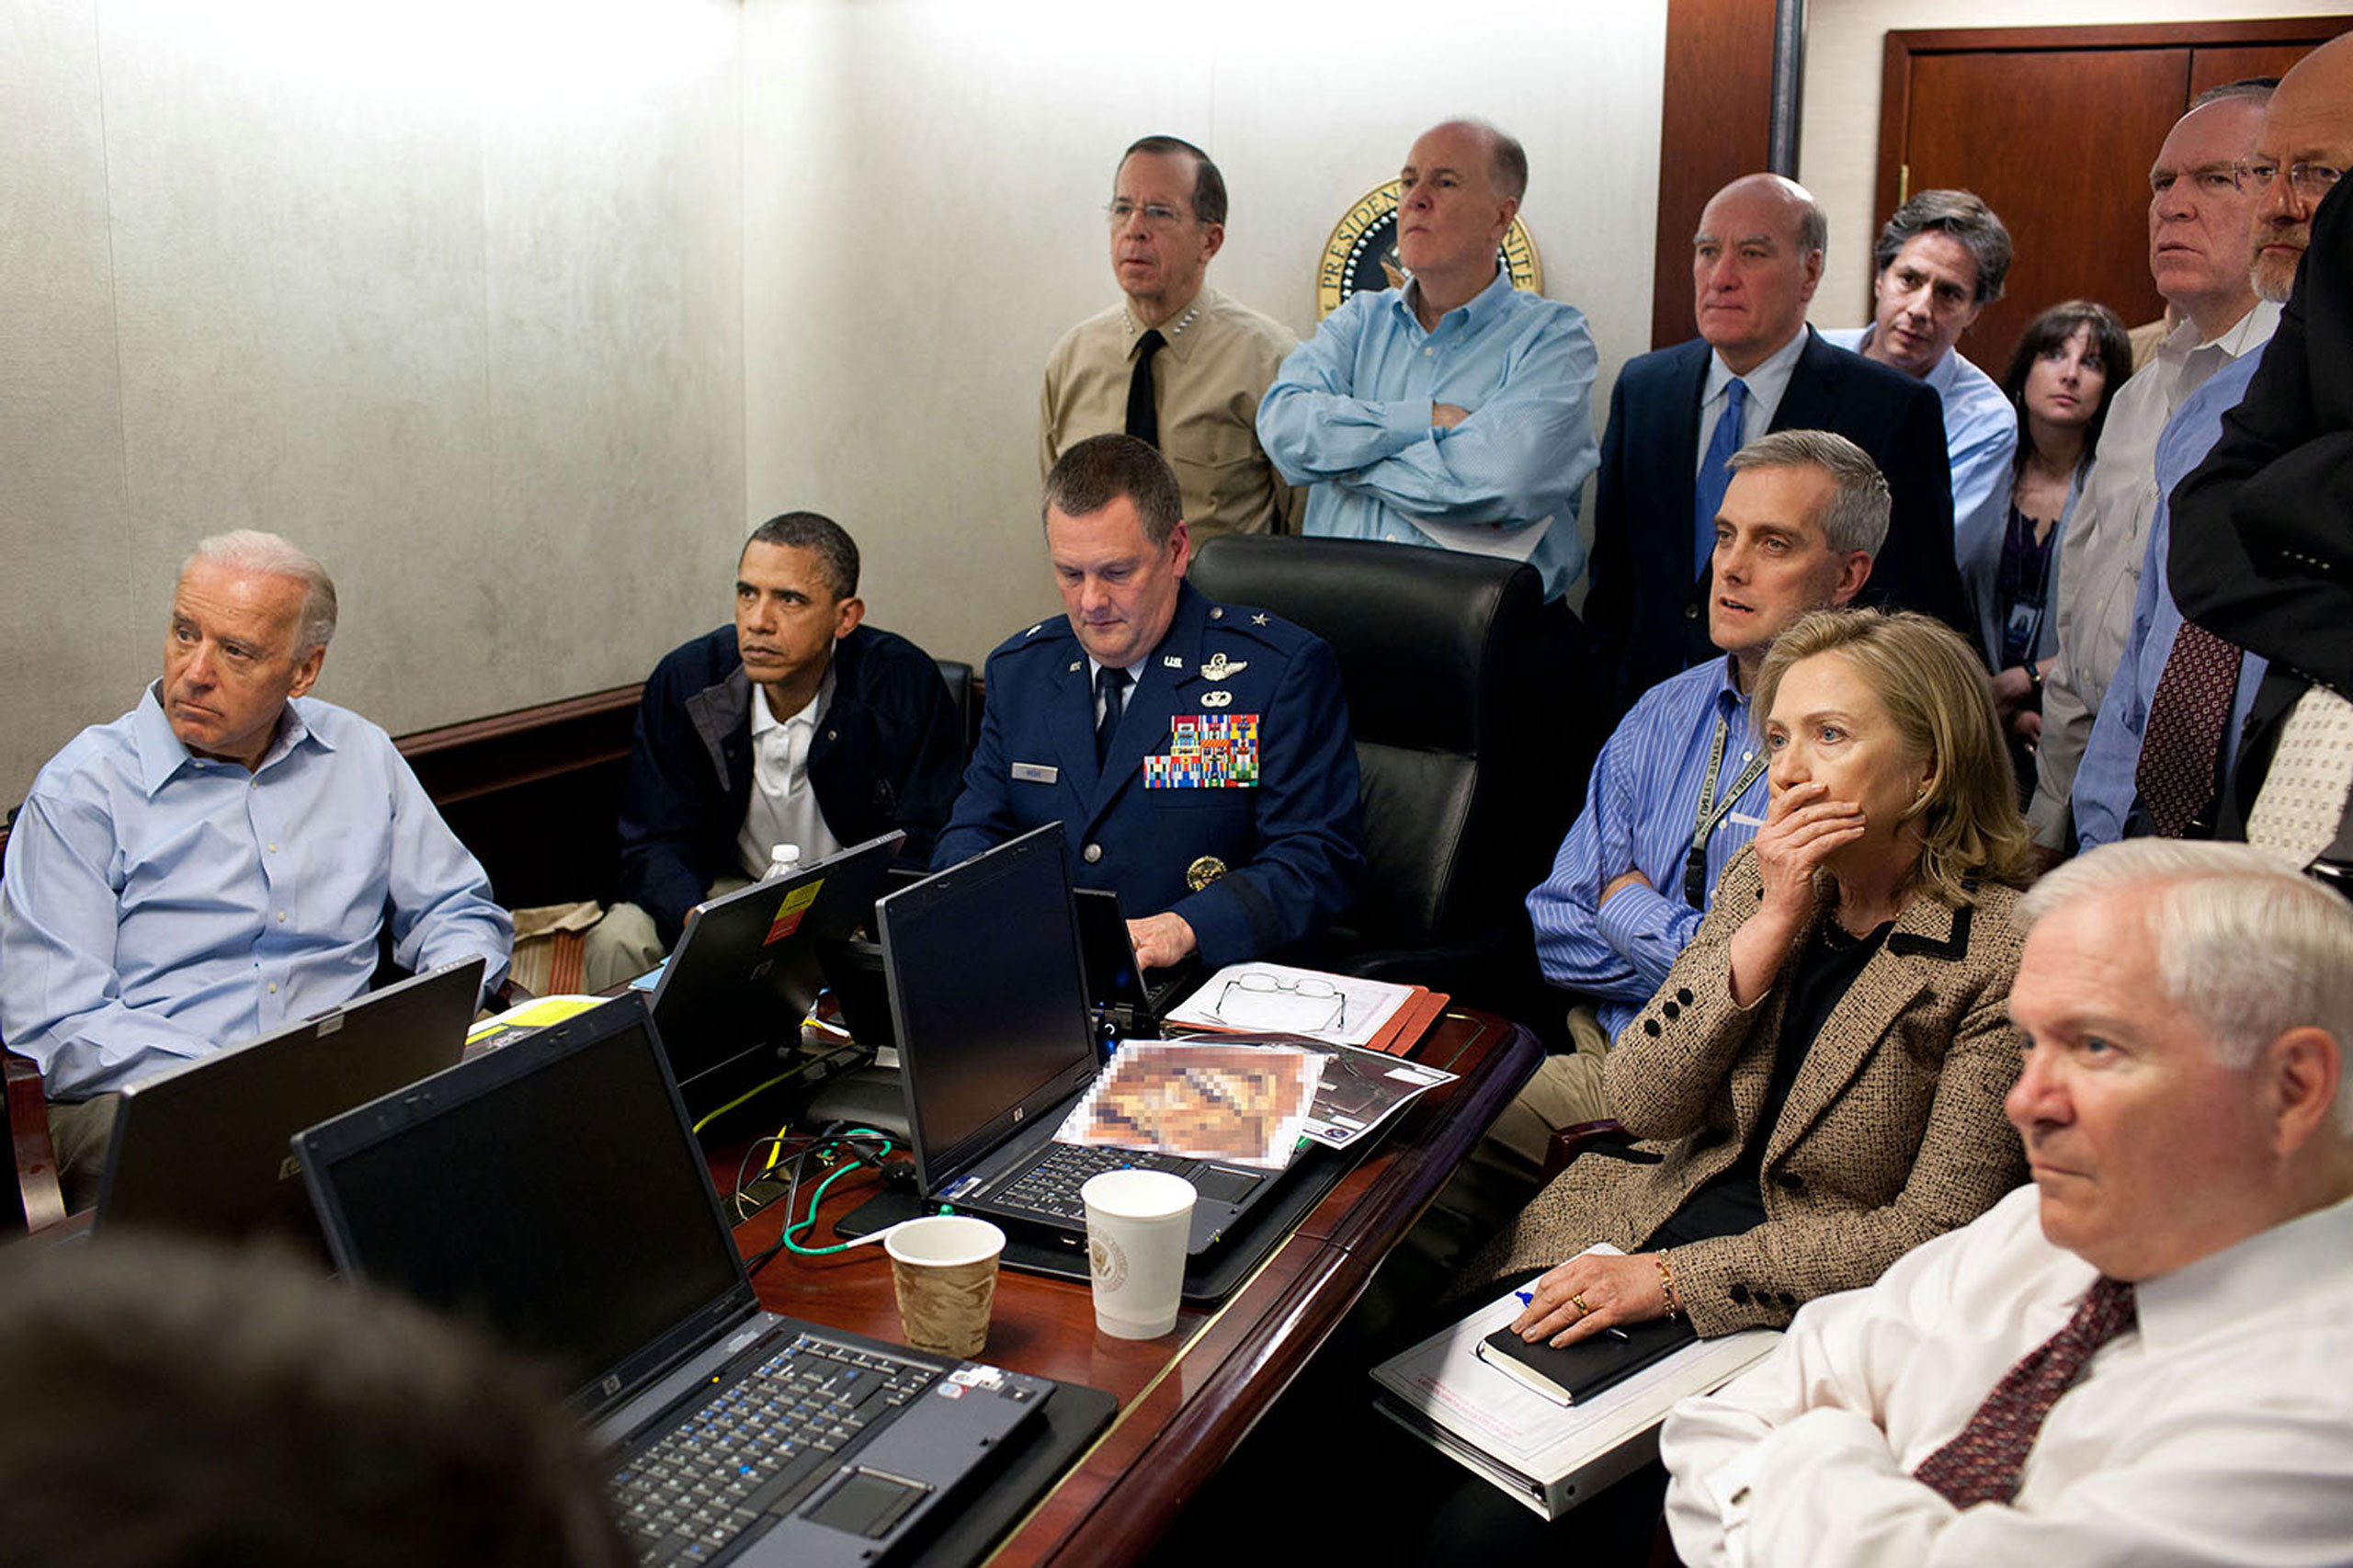 Much has been made of this photograph that shows the President and Vice President and the national security team monitoring in real time the mission against Osama bin Laden, May 1, 2011. Some more background on the photograph: The White House Situation Room is actually comprised of several different conference rooms. The majority of the time, the President convenes meetings in the large conference room with assigned seats. But to monitor this mission, the group moved into the much smaller conference room. The President chose to sit next to Brigadier General Marshall B.  Brad  Webb, Assistant Commanding General of Joint Special Operations Command, who was point man for the communications taking place. With so few chairs, others just stood at the back of the room. I was jammed into a corner of the room with no room to move. During the mission itself, I made approximately 100 photographs, almost all from this cramped spot in the corner. Please note: a classified document seen in front of Sec. Clinton has been obscured.